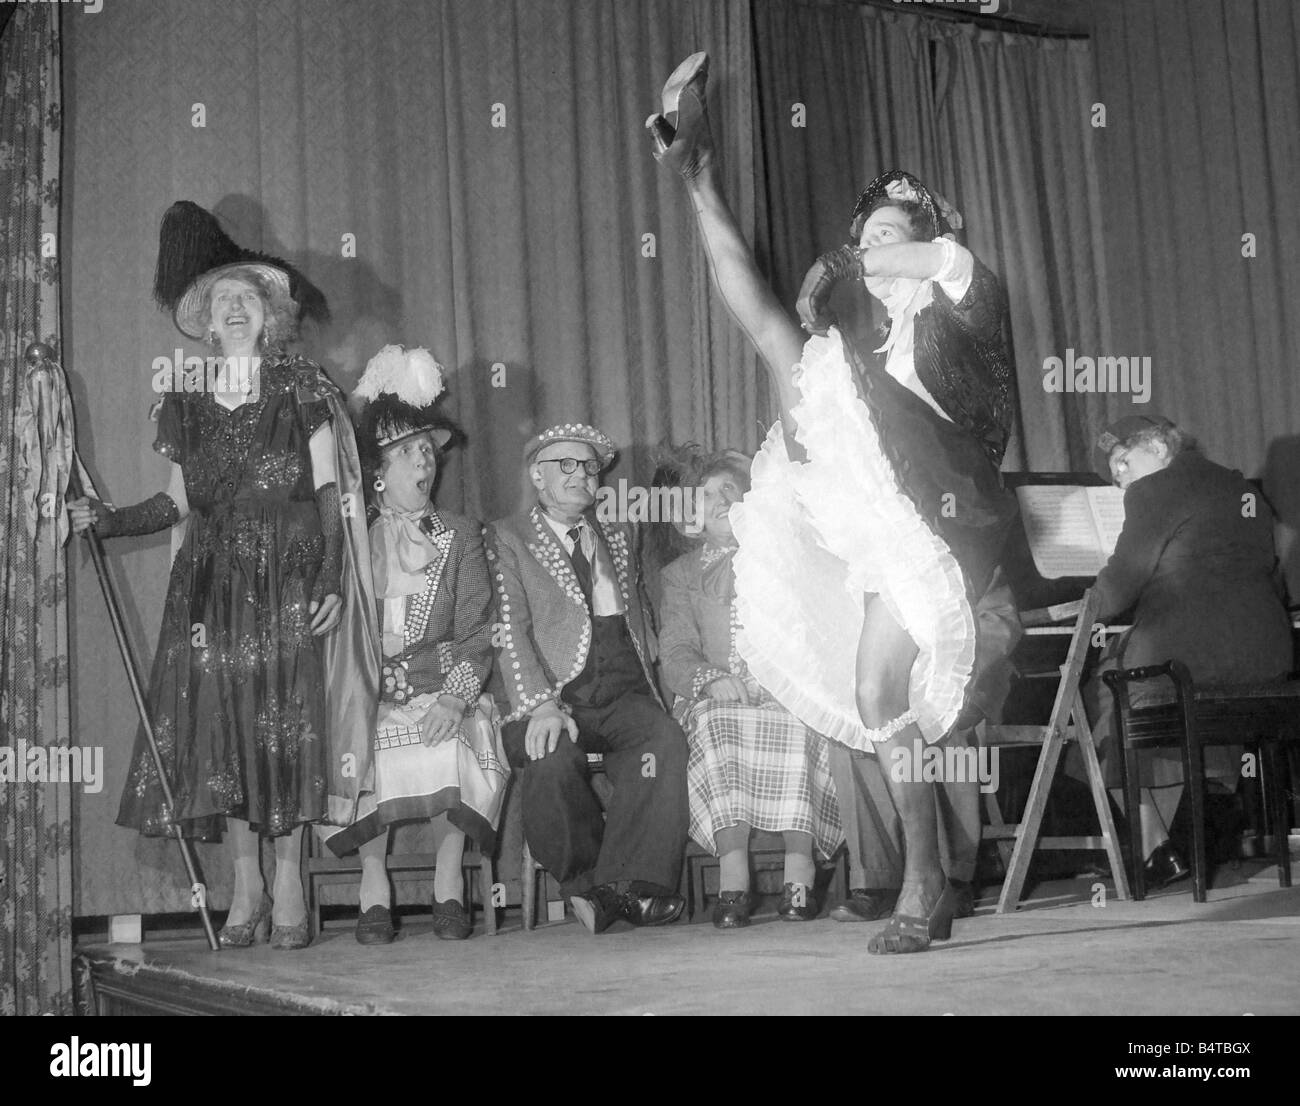 Old lady performs the can can during a concert by pearly kings and queens - Stock Image